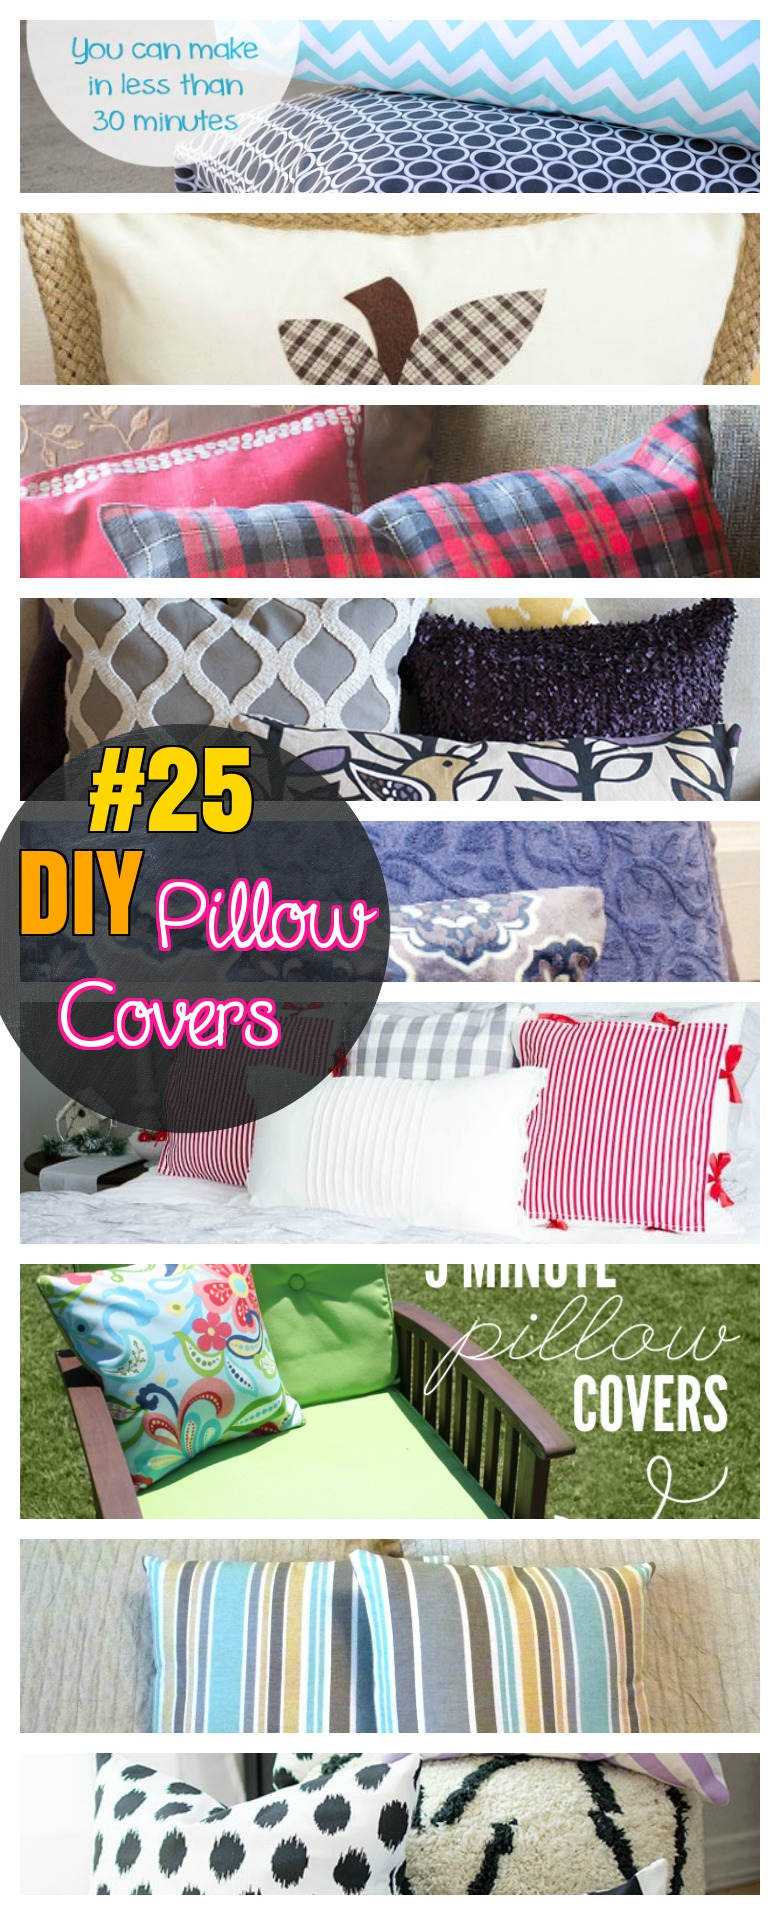 DIY 25 Pillow covers step by step tutorial for pillow case